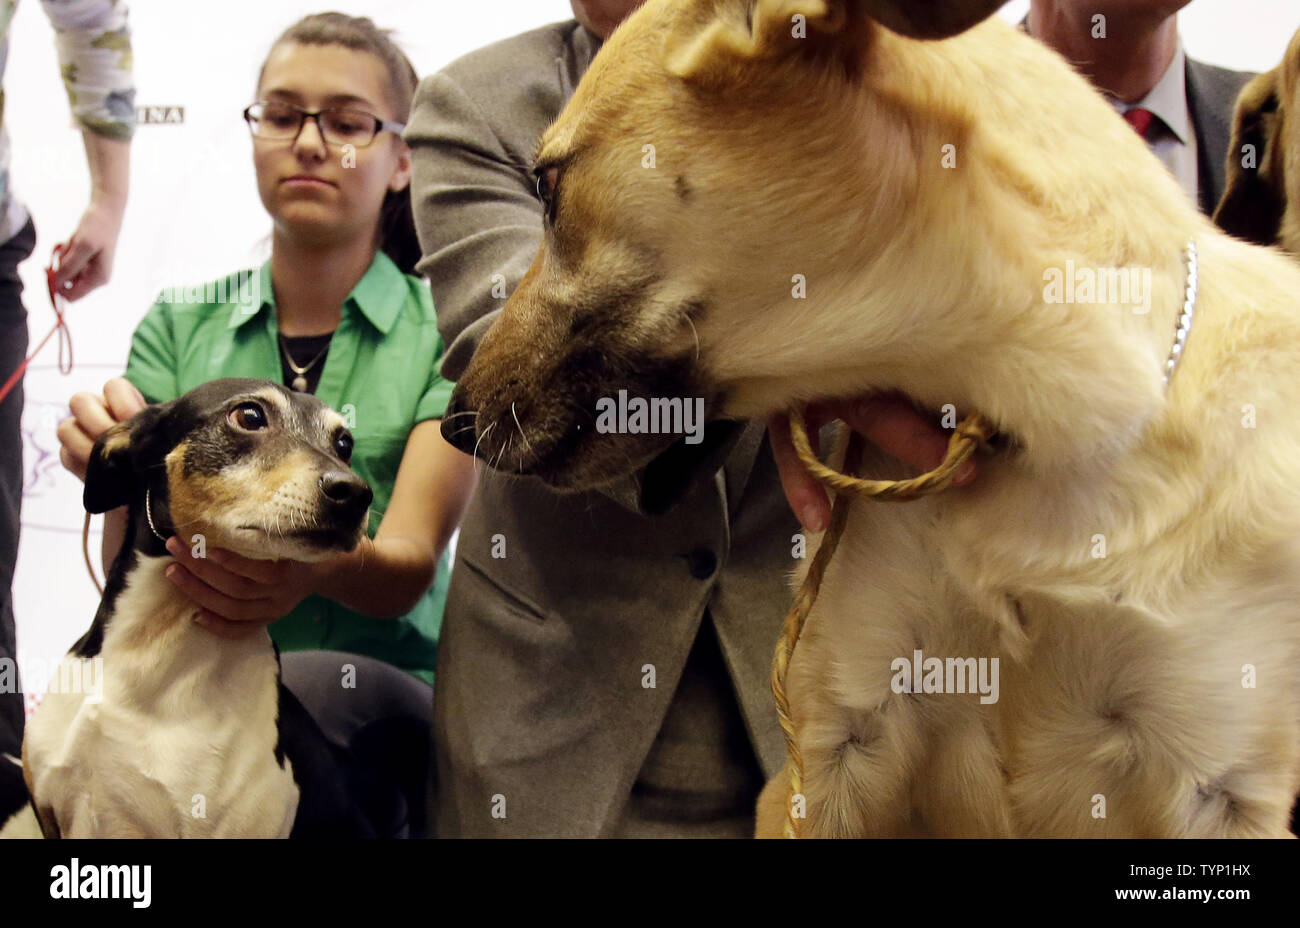 A Chinook and a Rat Terrier meet on the stage at a press conference announcing three new breeds that will be competing at the138th Annual Westminster Kennel Club Dog Show in New York City on January 15, 2014. The Portuguese Podengo Pequeno, Rat Terrier and Chinook are added this year as 3 new breed additions to the competition at Madison Square Garden.      UPI/John Angelillo Stock Photo